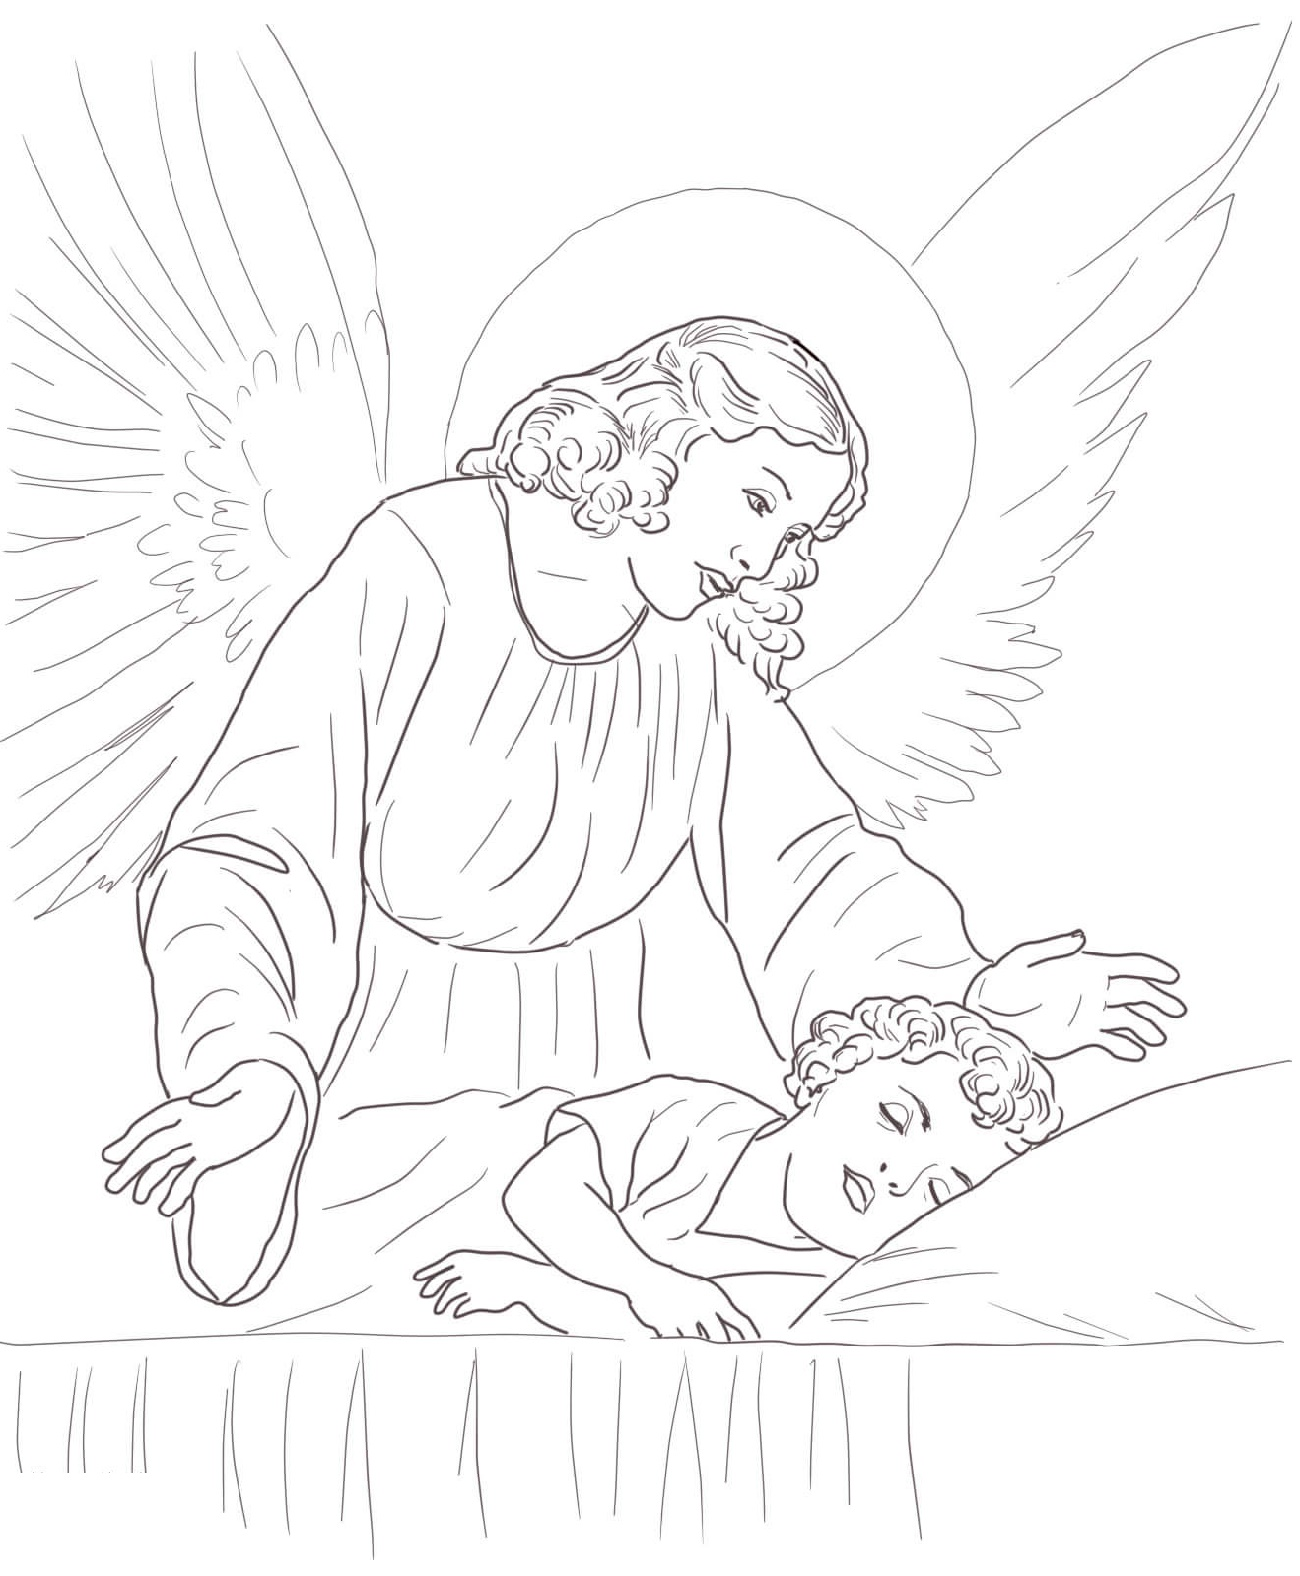 Angel Coloring Pages Over Sleeping Child